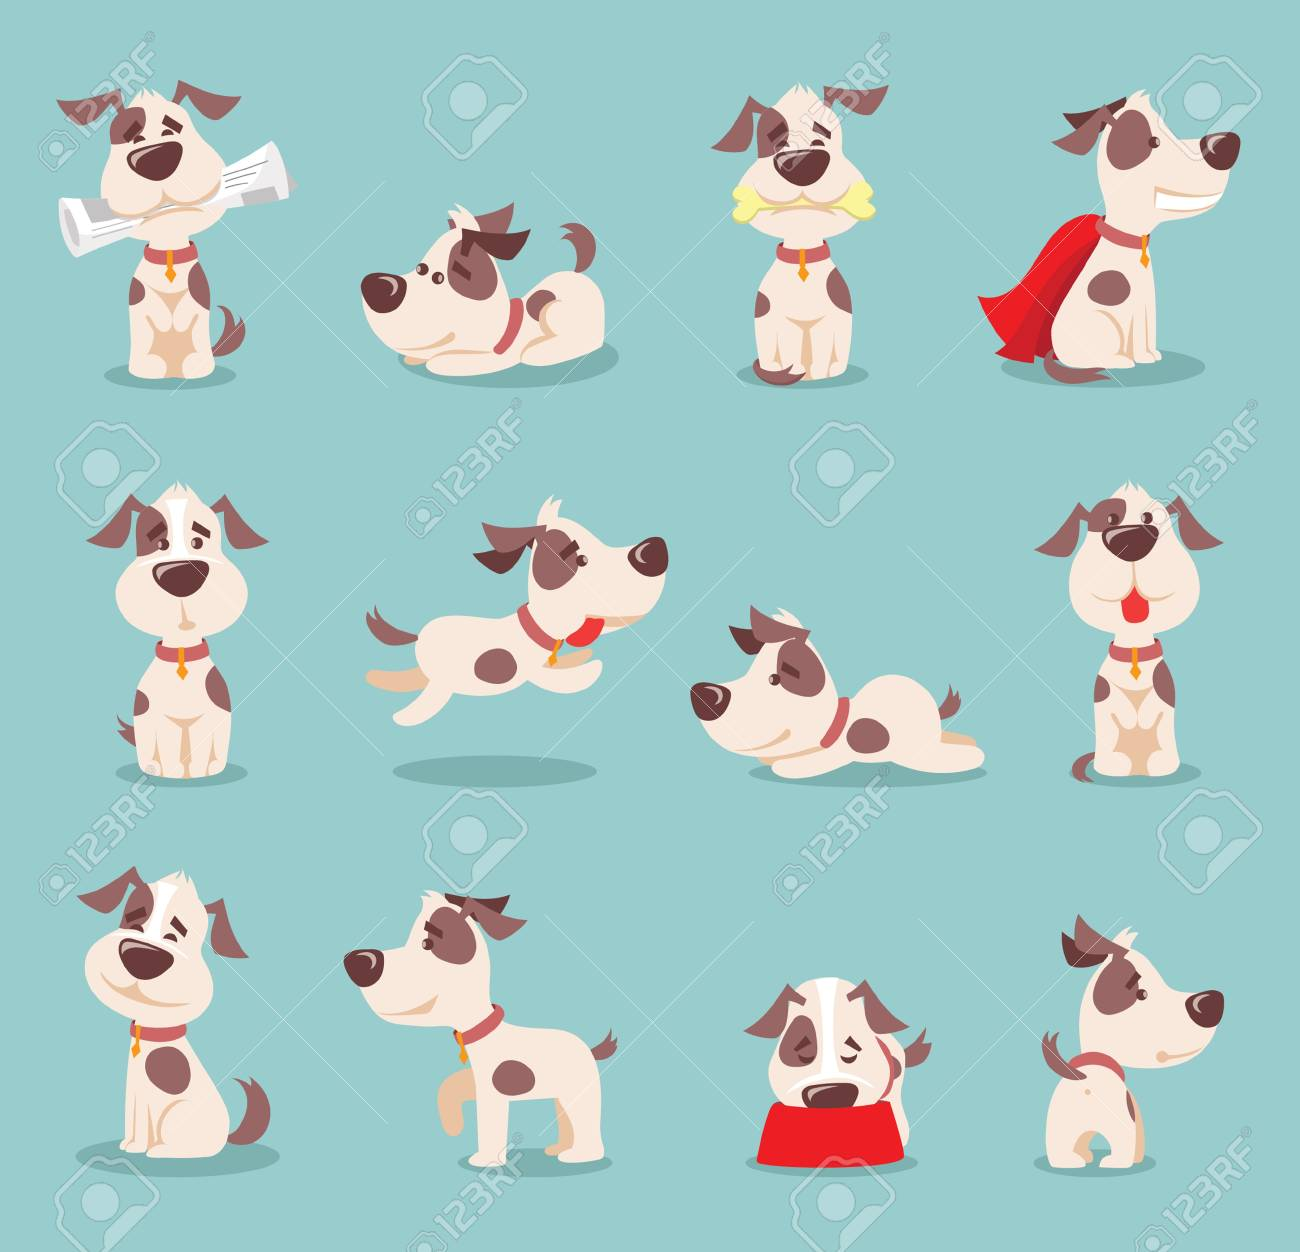 Vector Illustration Set Of Cute And Funny Cartoon Little Dogs Puppies Royalty Free Cliparts Vectors And Stock Illustration Image 93082809